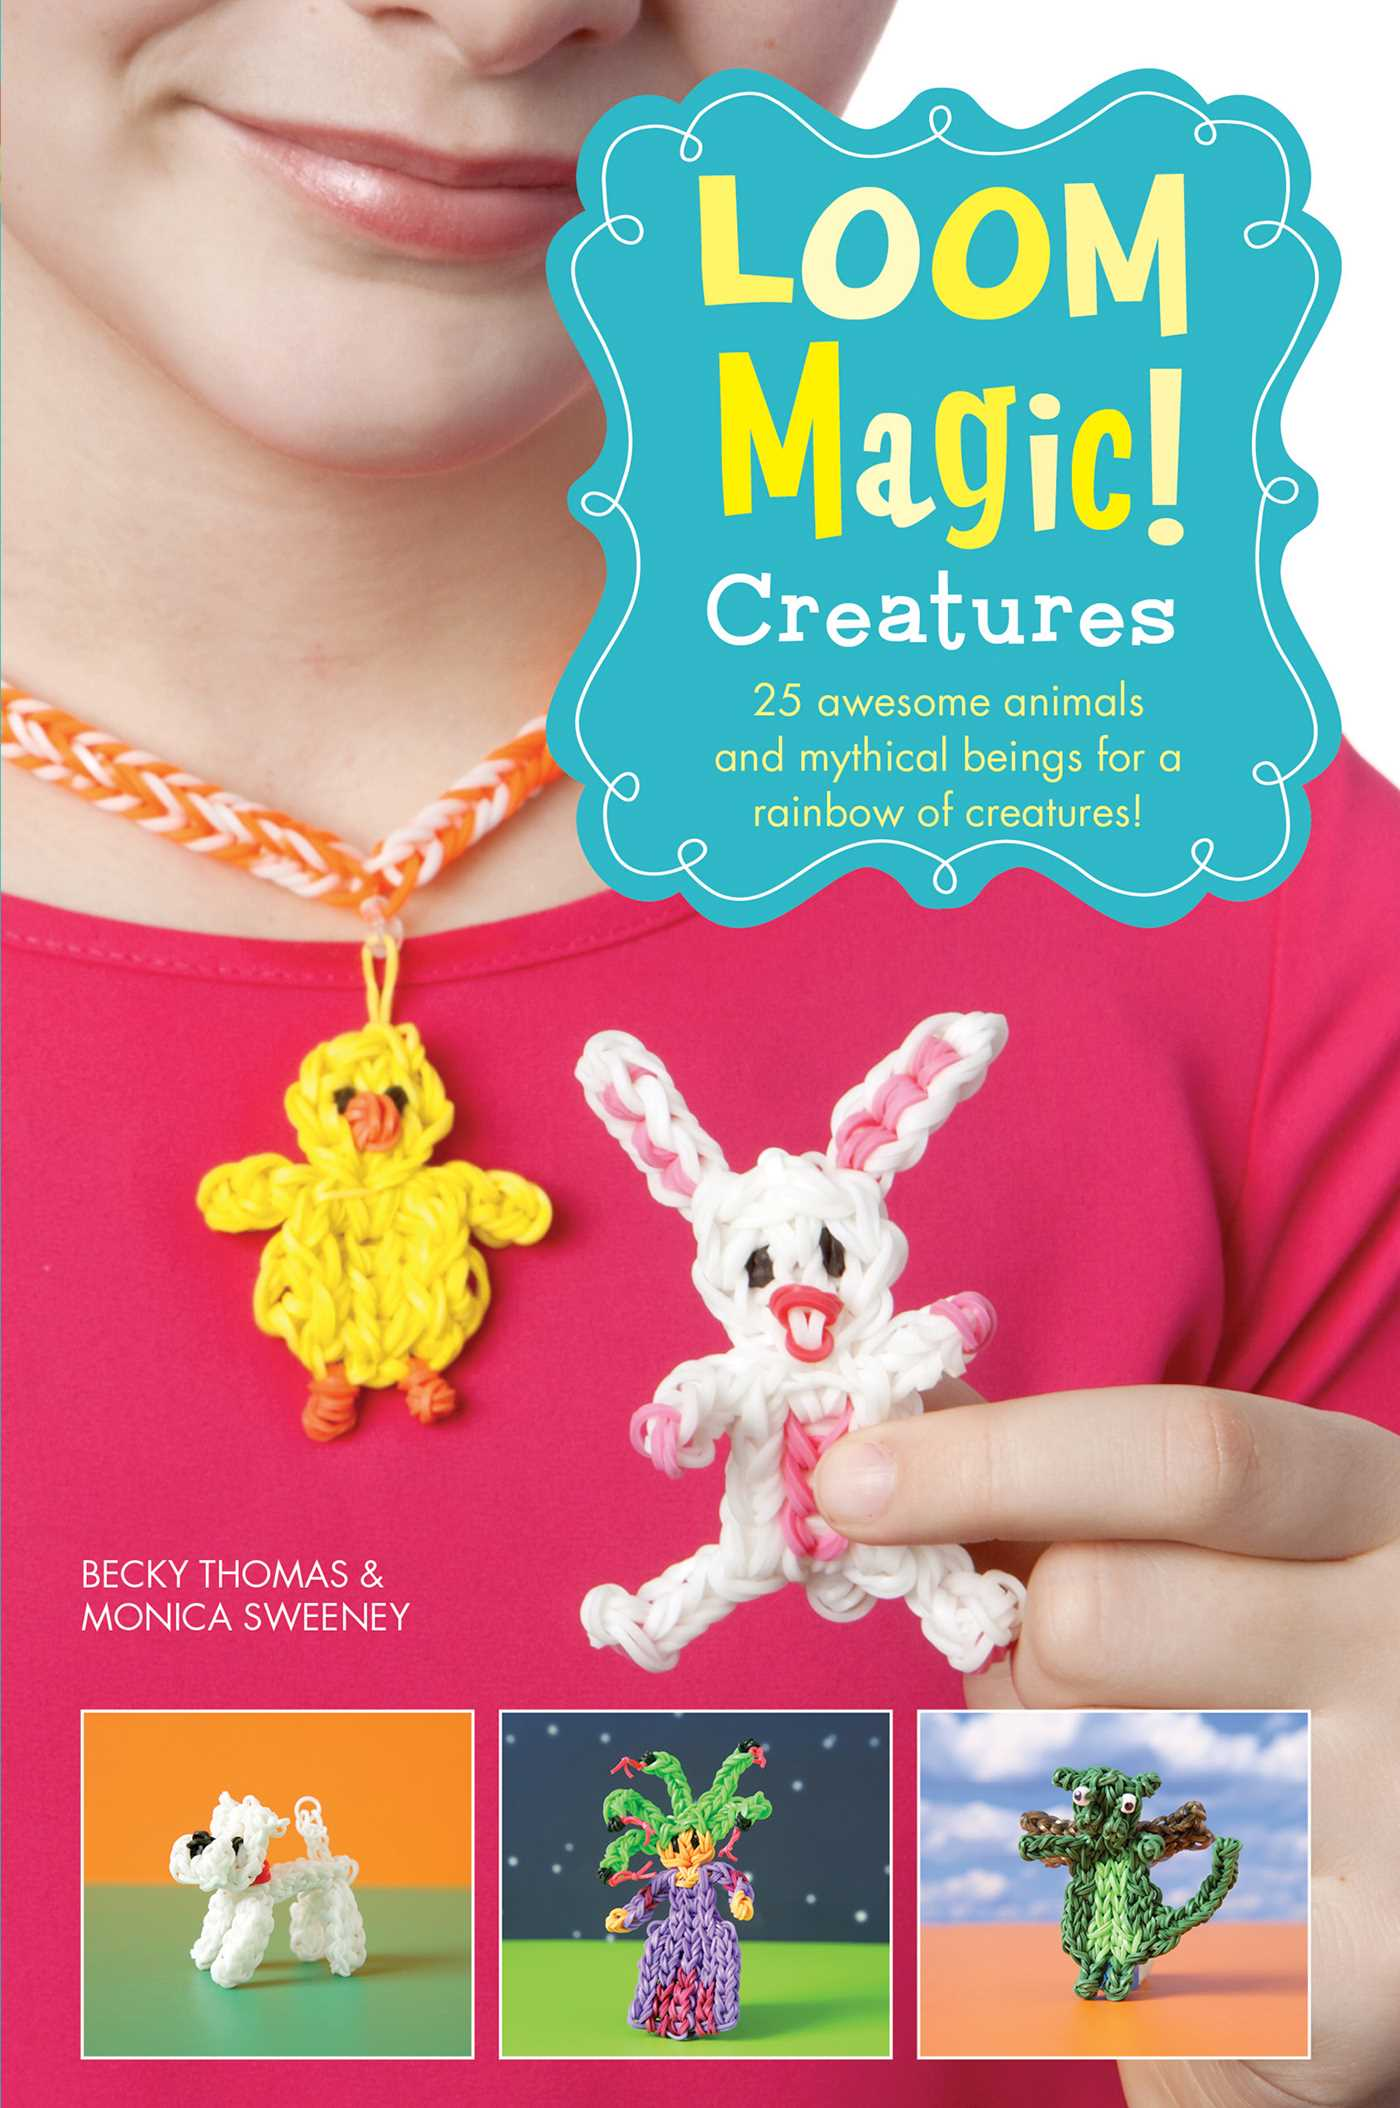 Loom magic creatures 25 awesome animals and mythical beings for a book cover image jpg loom magic creatures 25 awesome animals and mythical beings for a rainbow of c ebook 9781471124518 fandeluxe Choice Image